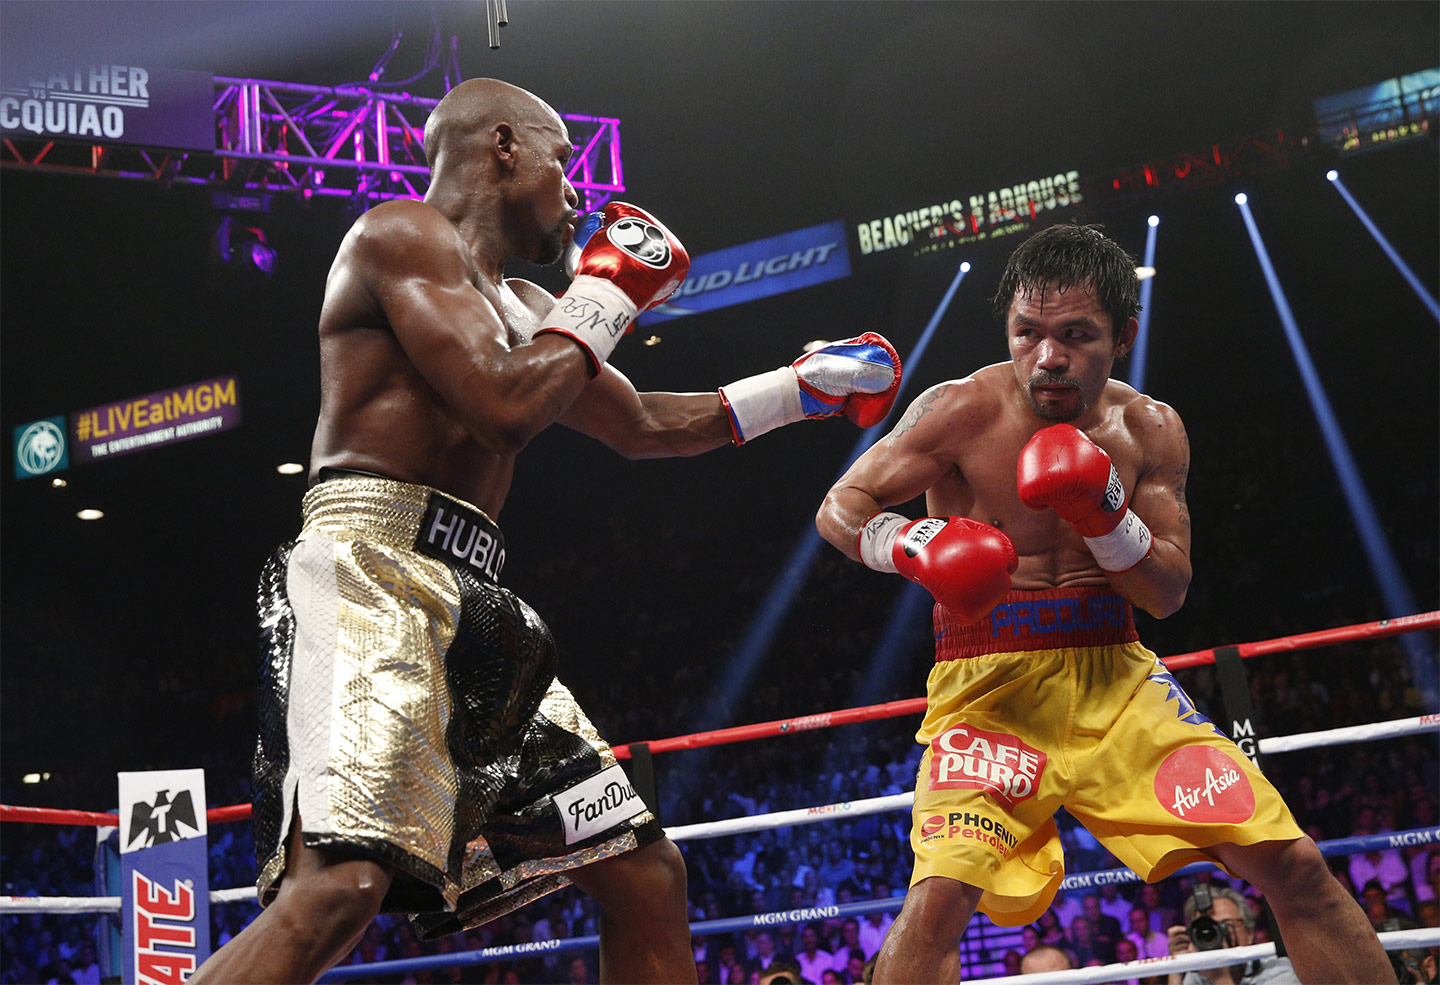 Floyd Mayweather Jr. and Manny Pacquiao